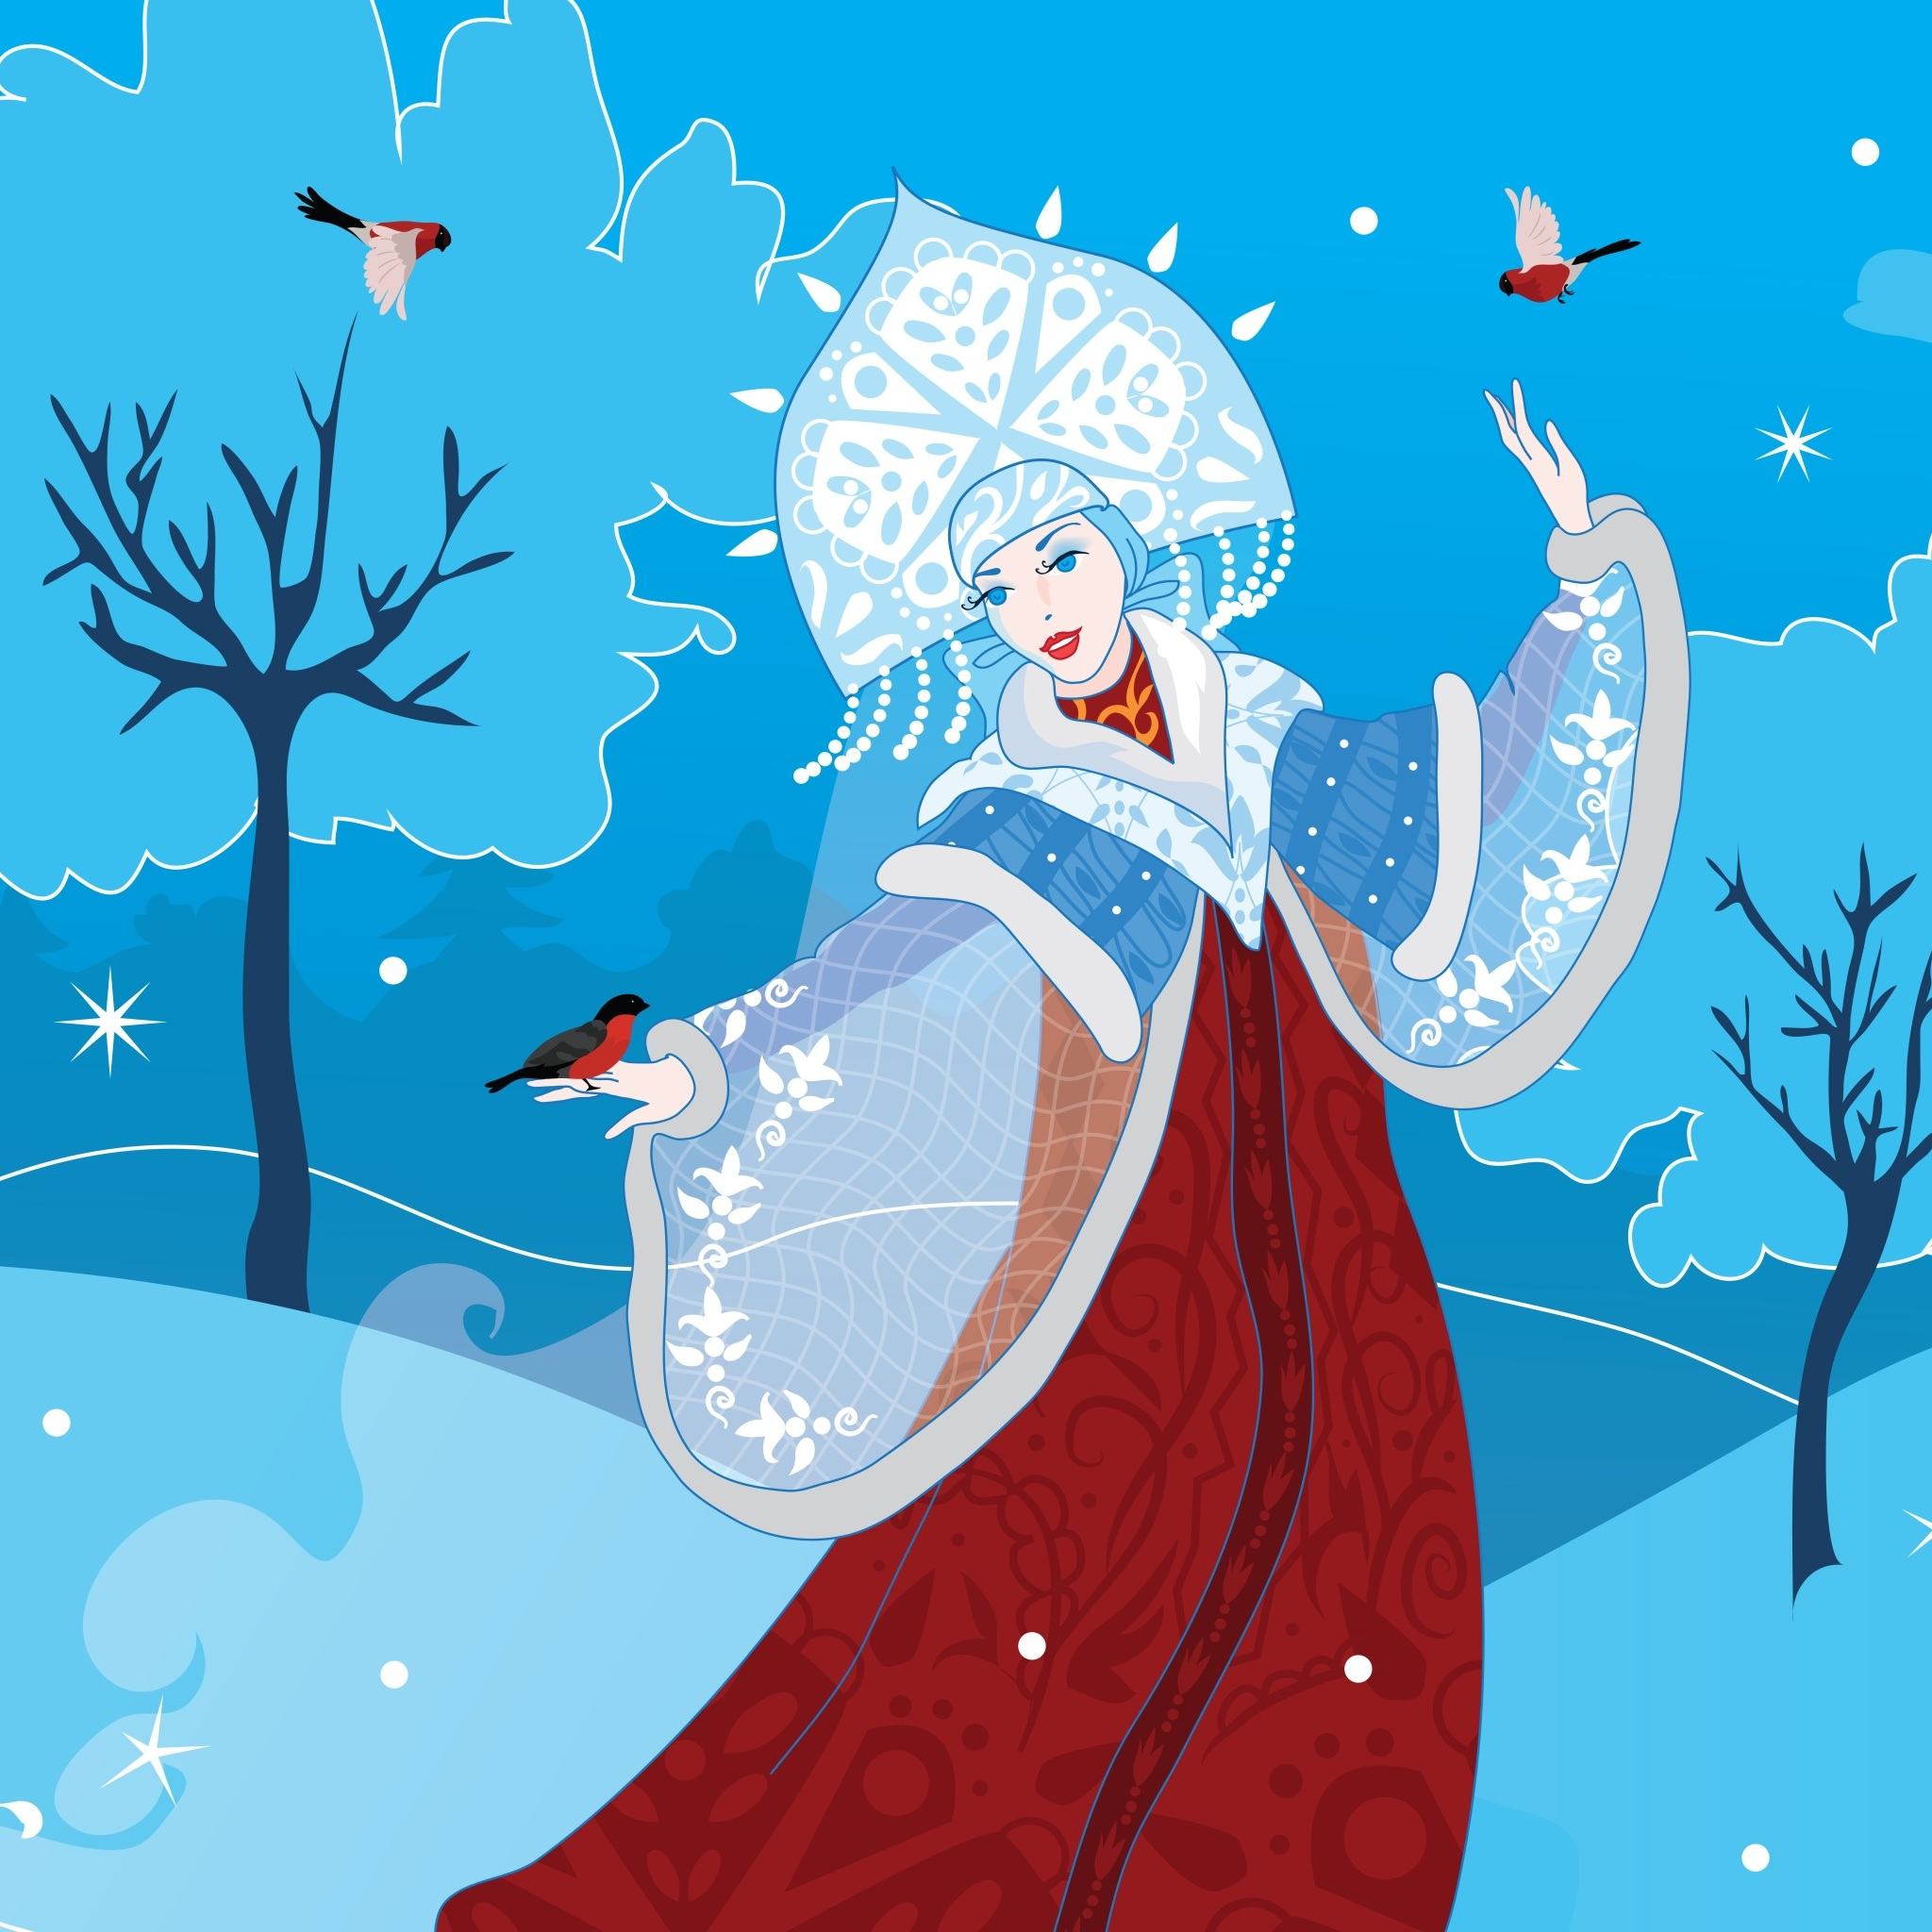 Russian Snow Maiden 3Wallpapers iPad Retina Russian Snow Maiden   iPad Retina